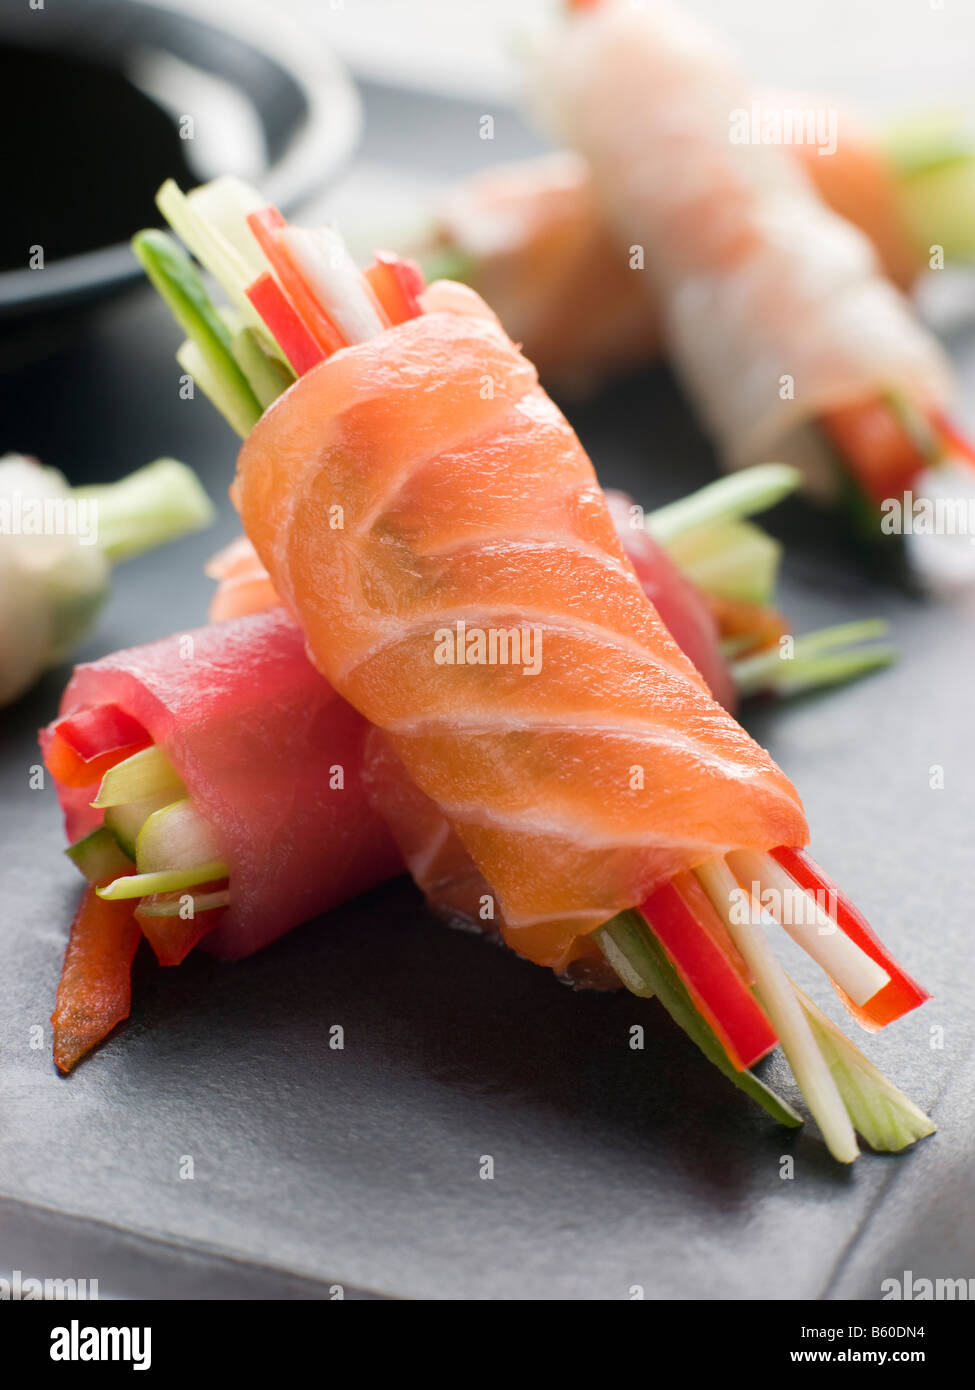 Sashimi and Vegetable Rolls with Soy Sauce - Stock Image